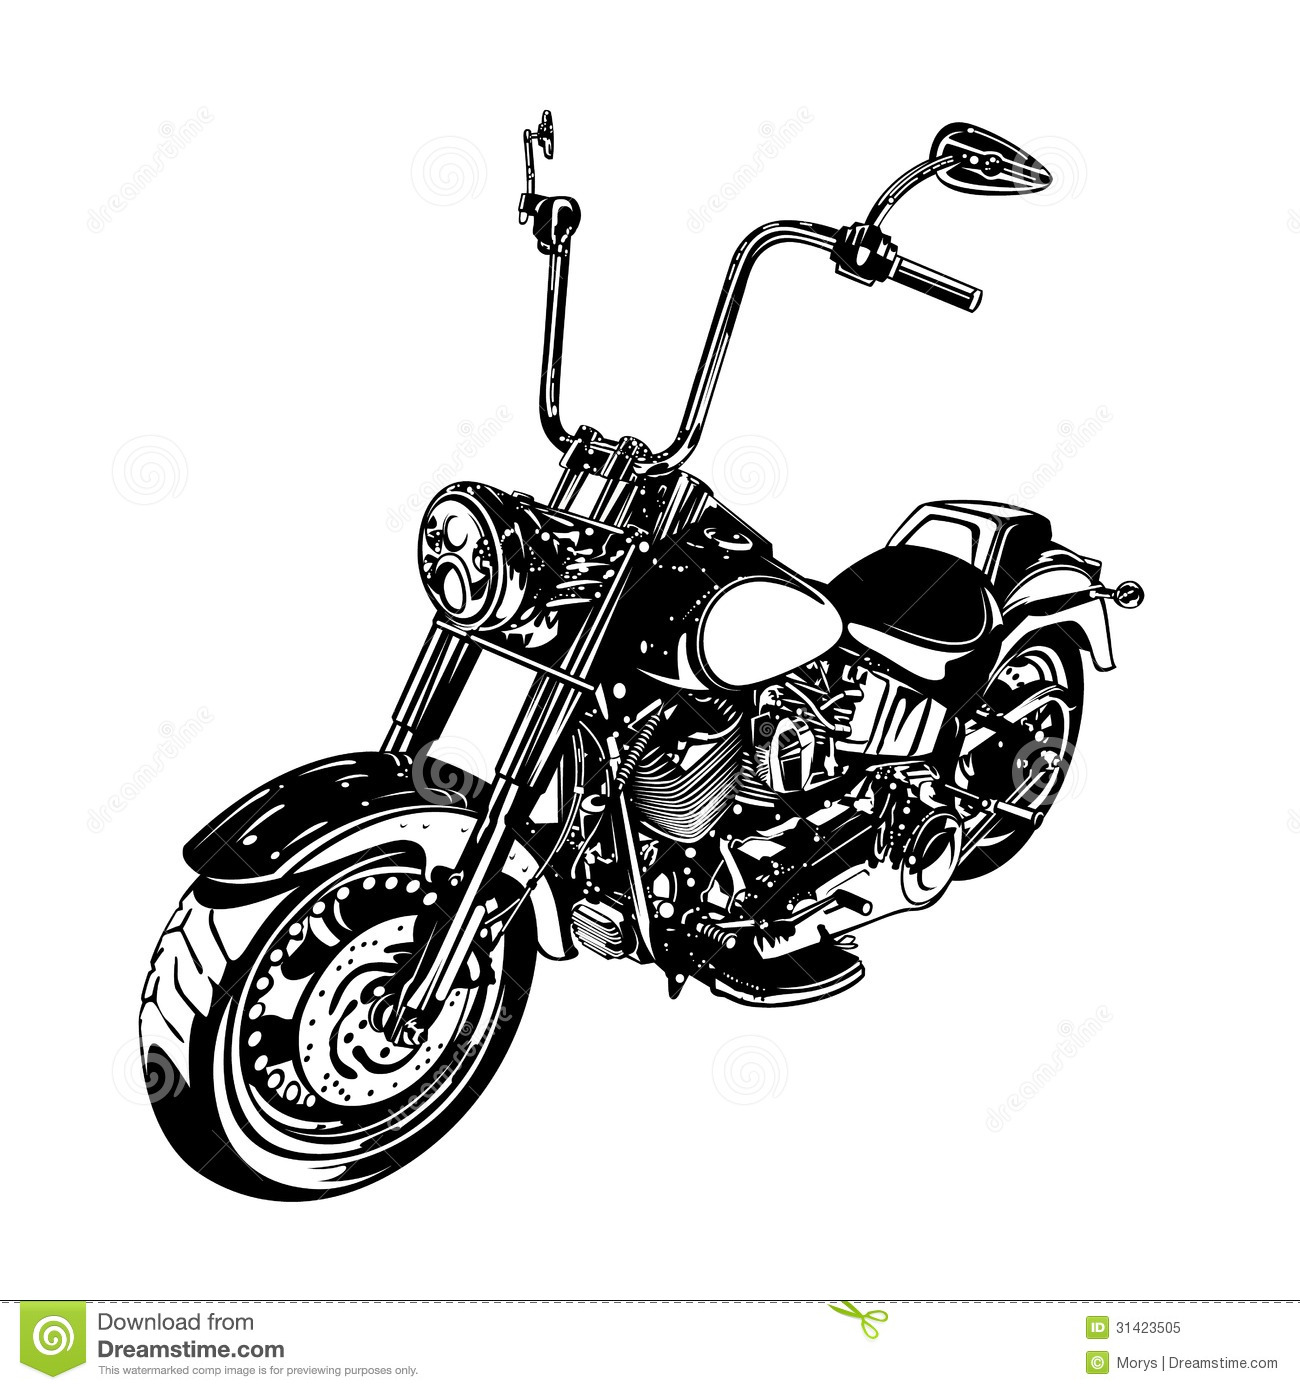 Black and White Chopper Motorcycle Art